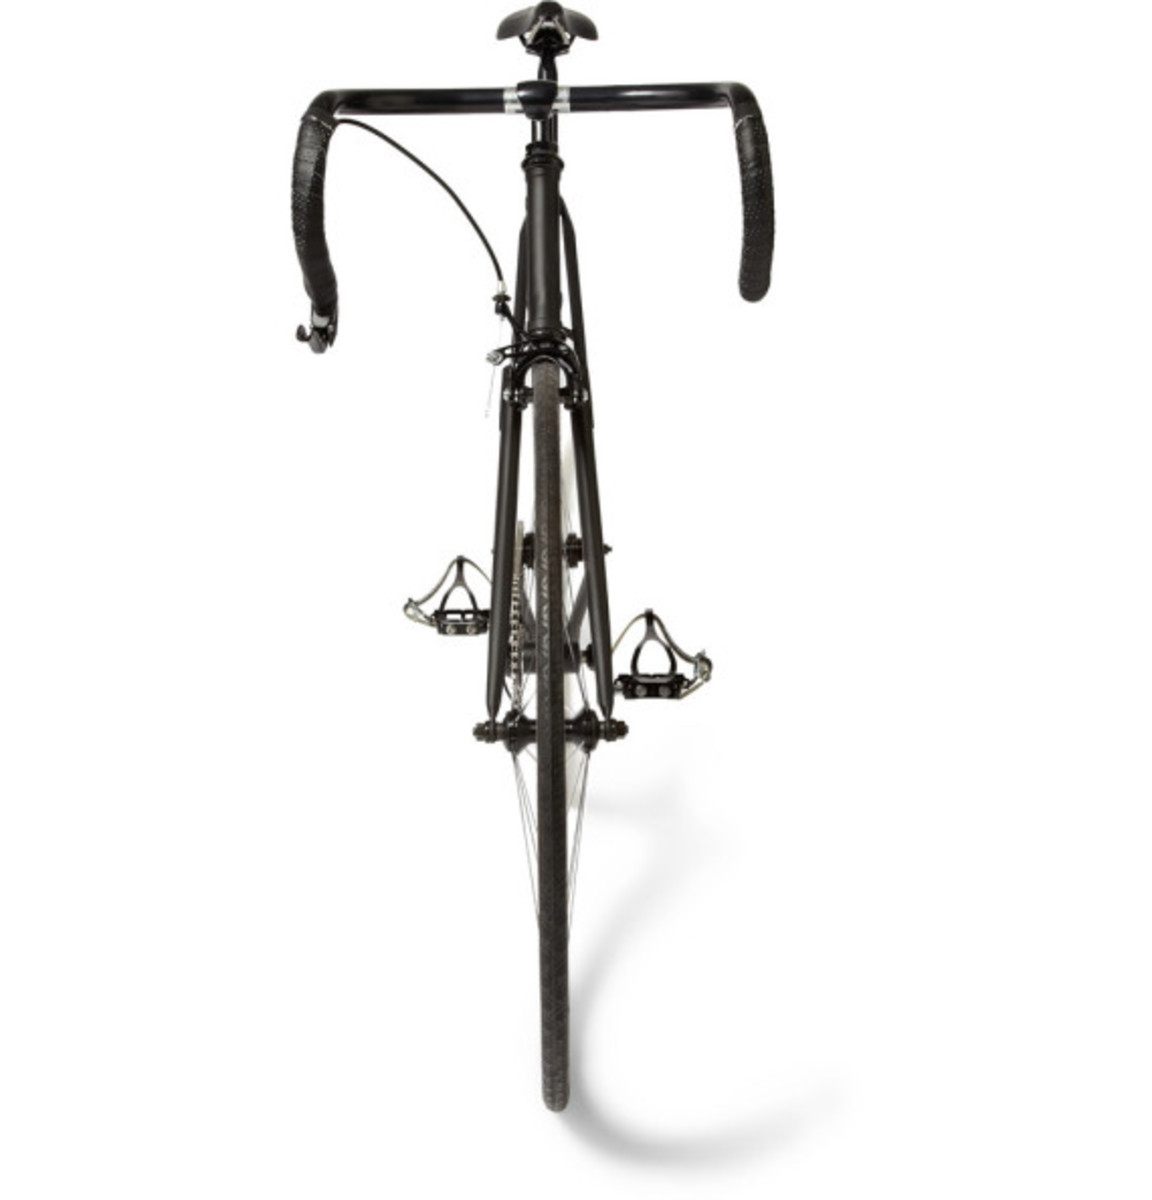 paul-smith-531-fixed-gear-bike-03